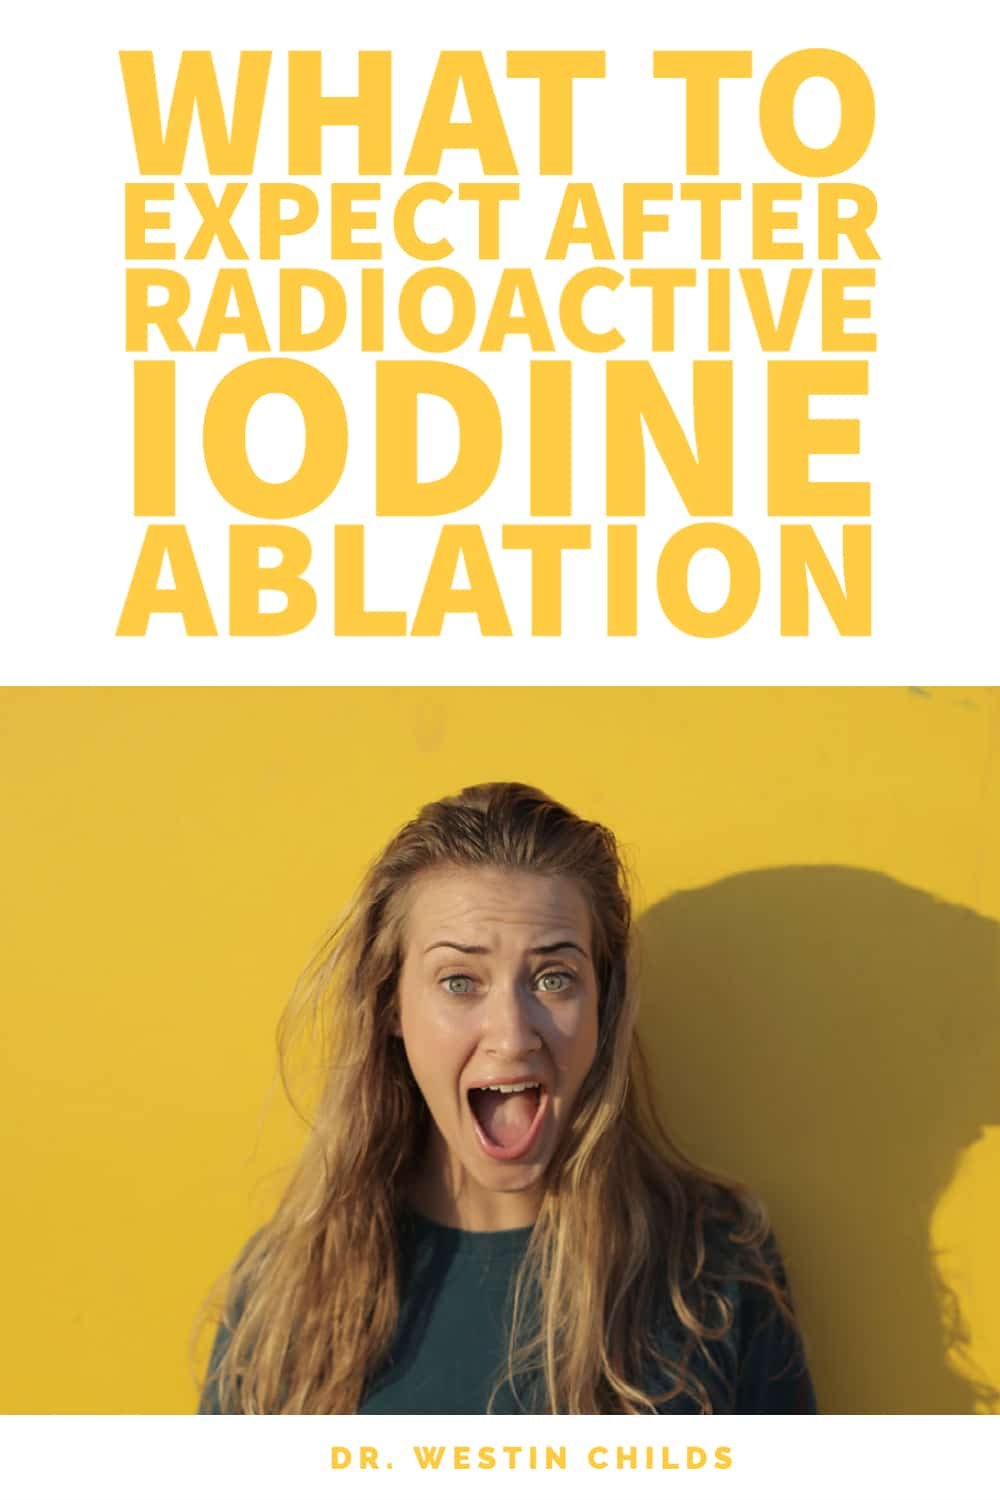 what to expect after radioactiove iodine ablation